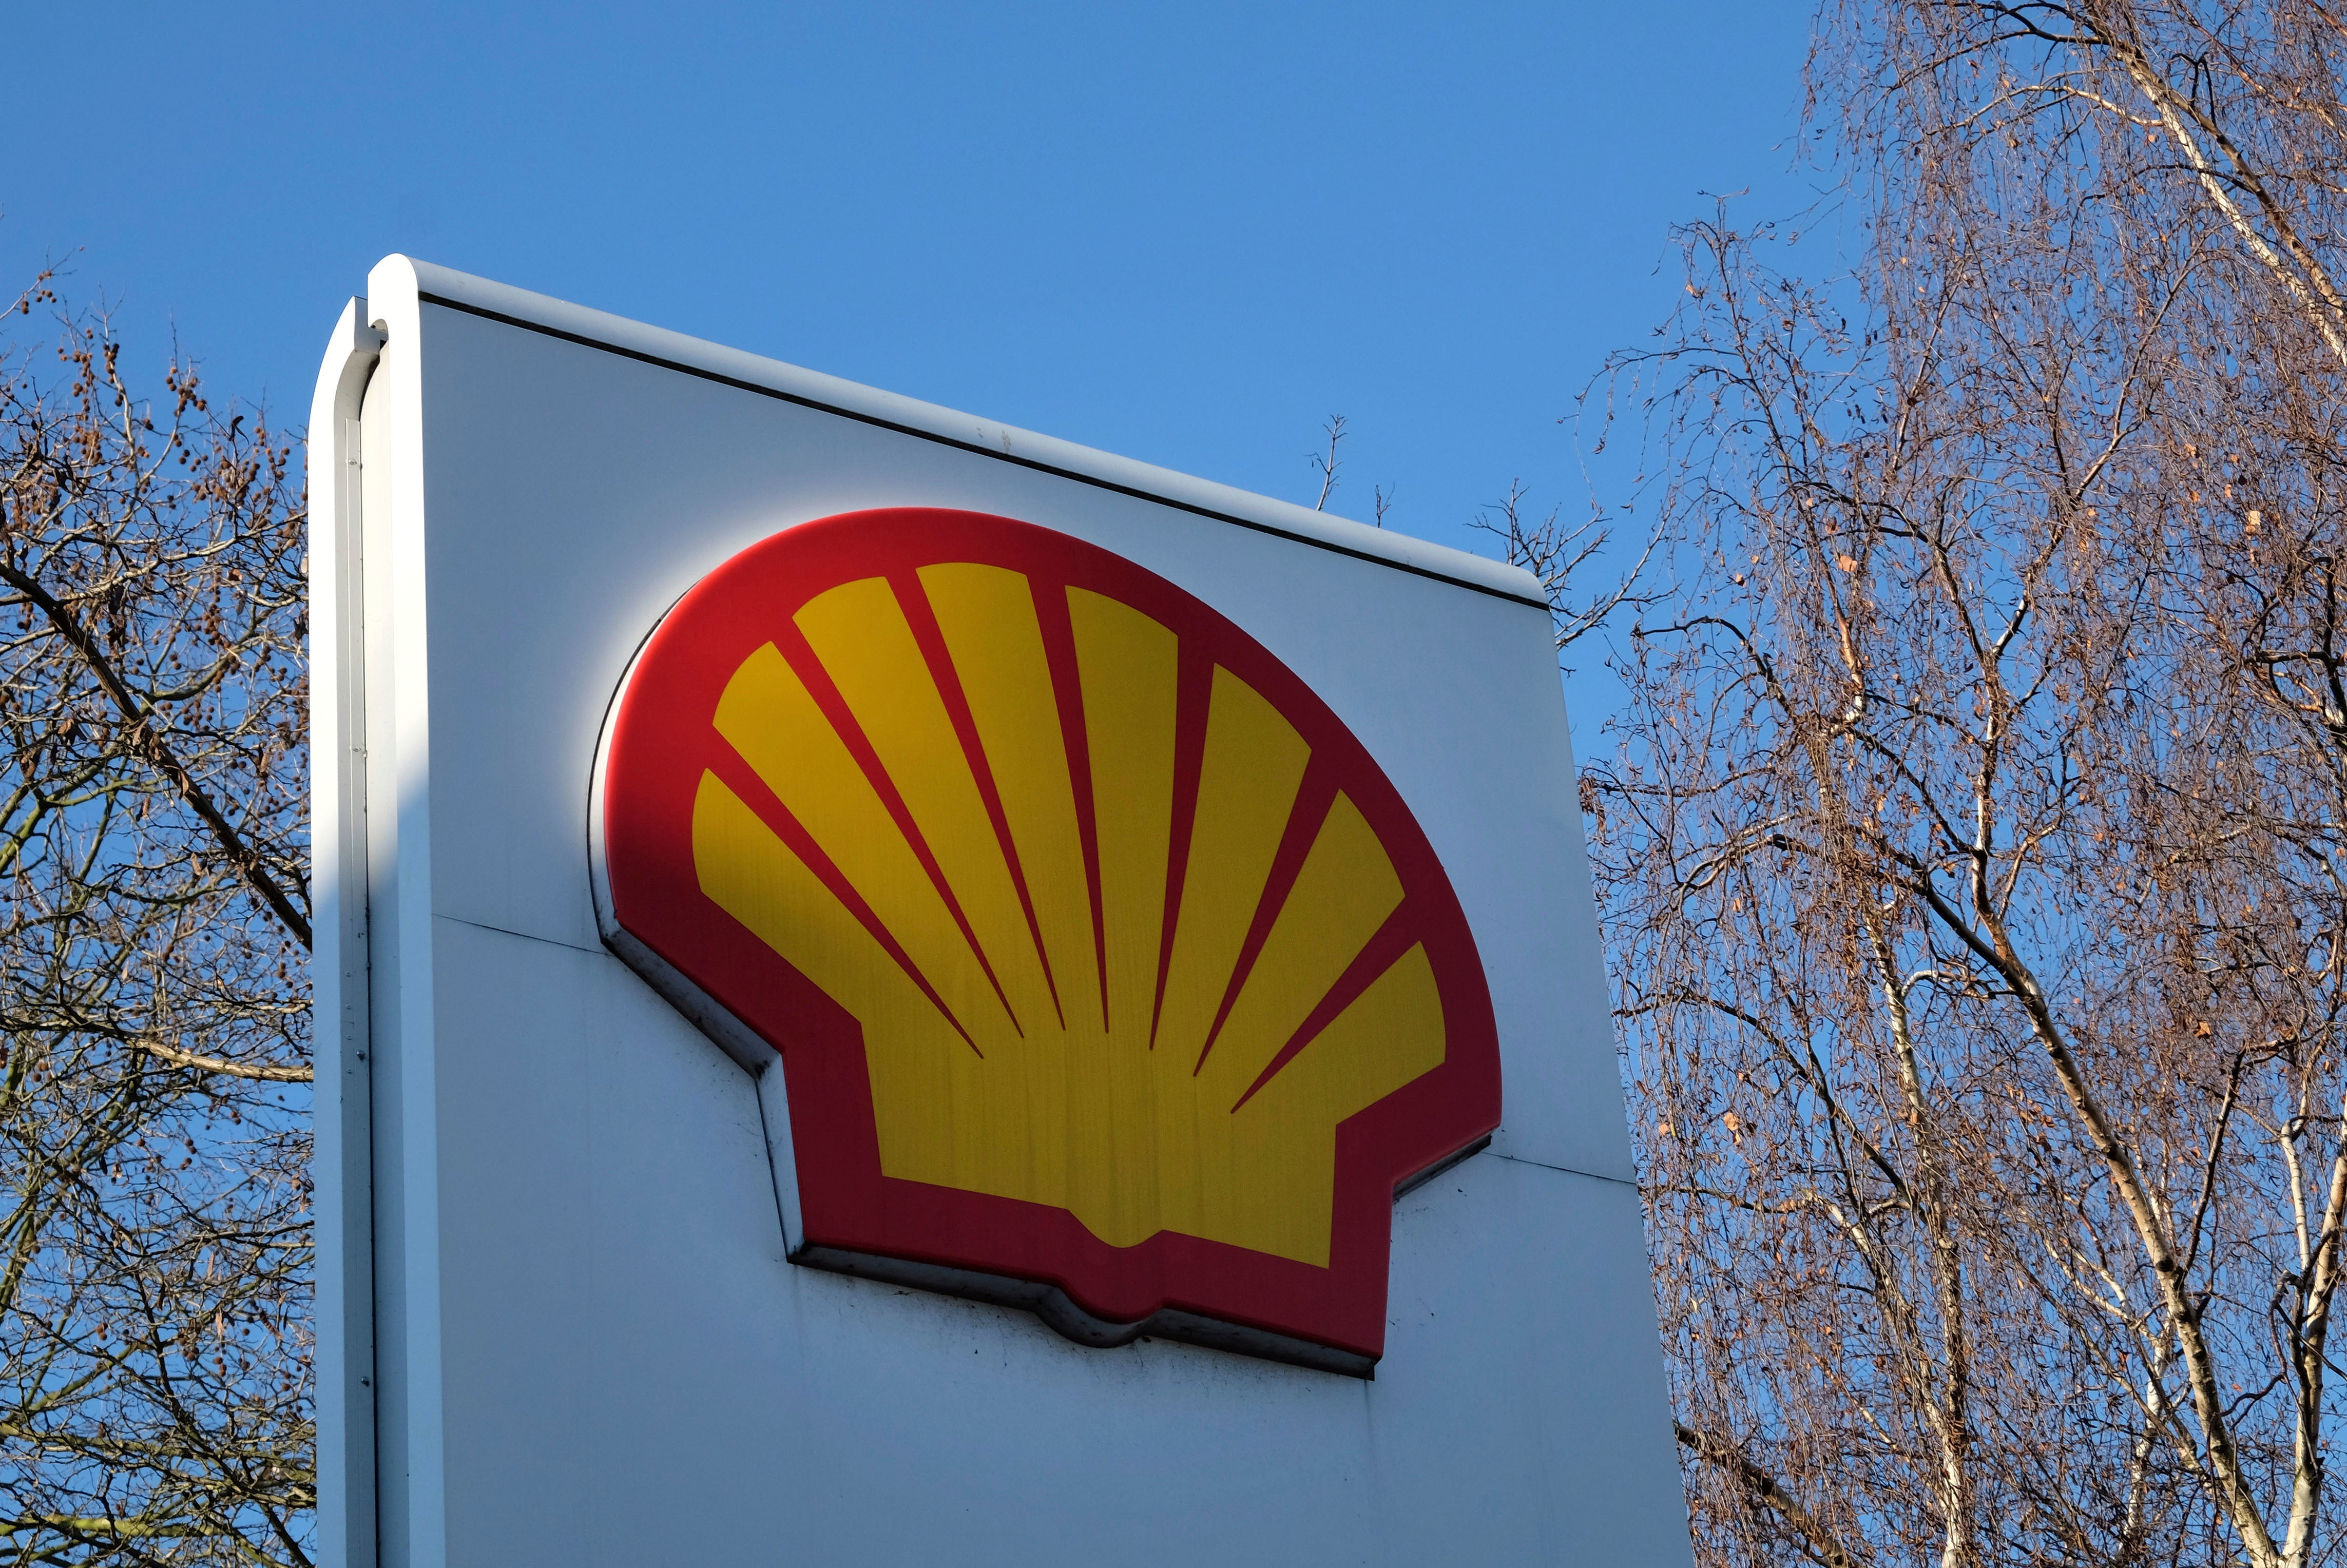 independent.co.uk - Ben Chapman - Shell plans to cut up to 9,000 jobs as oil demand slumps